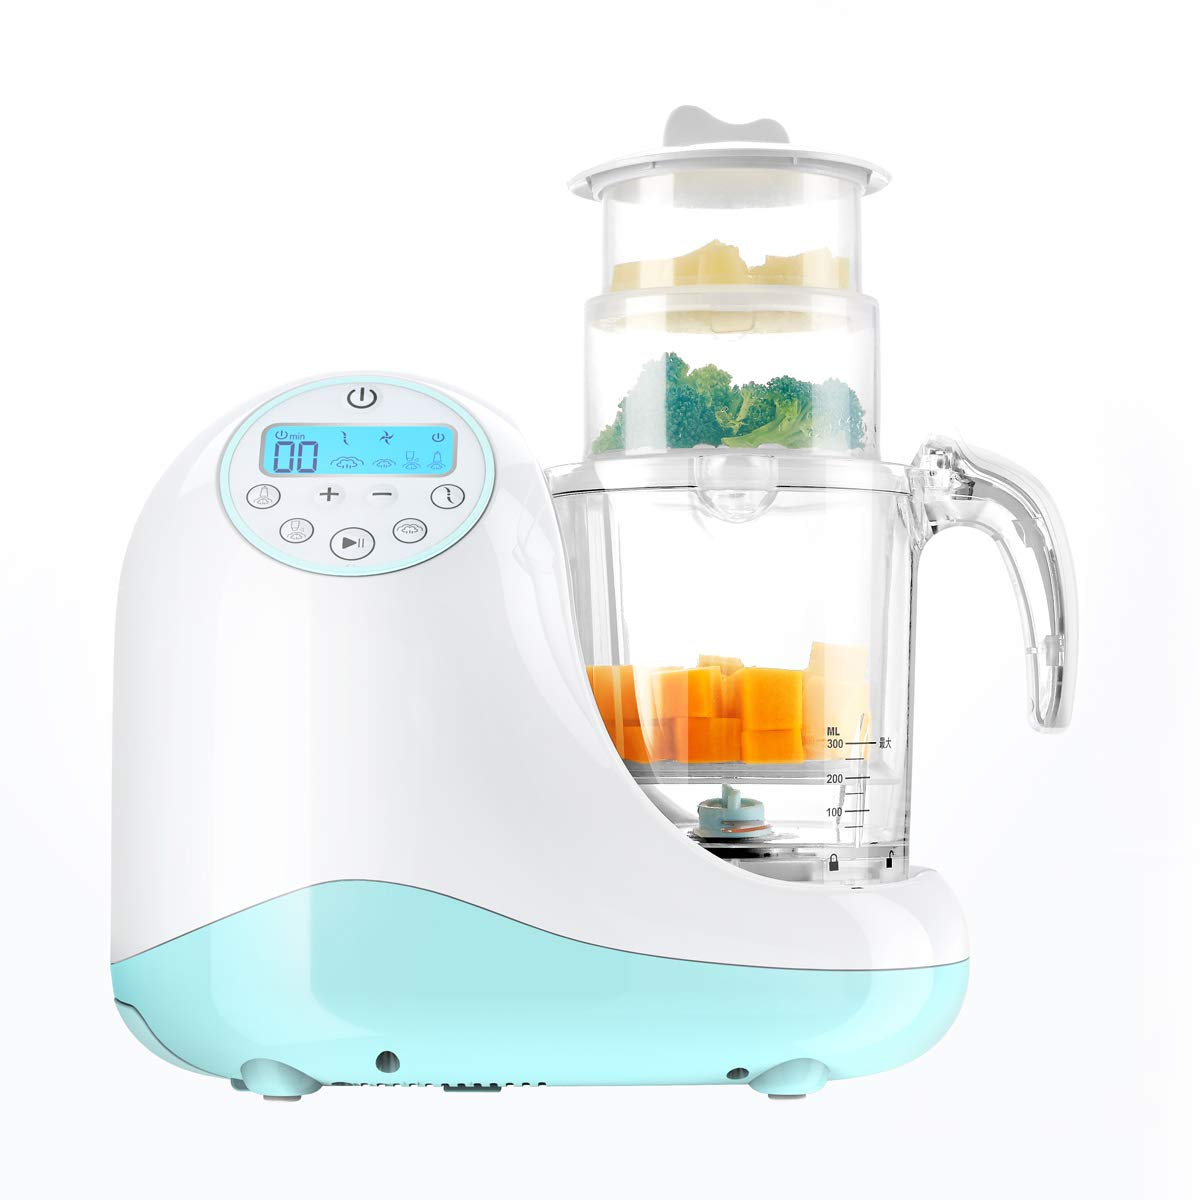 Baby cook 5 in 1 Baby Food Processor, Steam Cooker, With Blending, Mixing & Chopping, Sterilizing and Warming & Reheating Function, Make Organic Food for Infants and Toddlers, Includes 3 Baskets